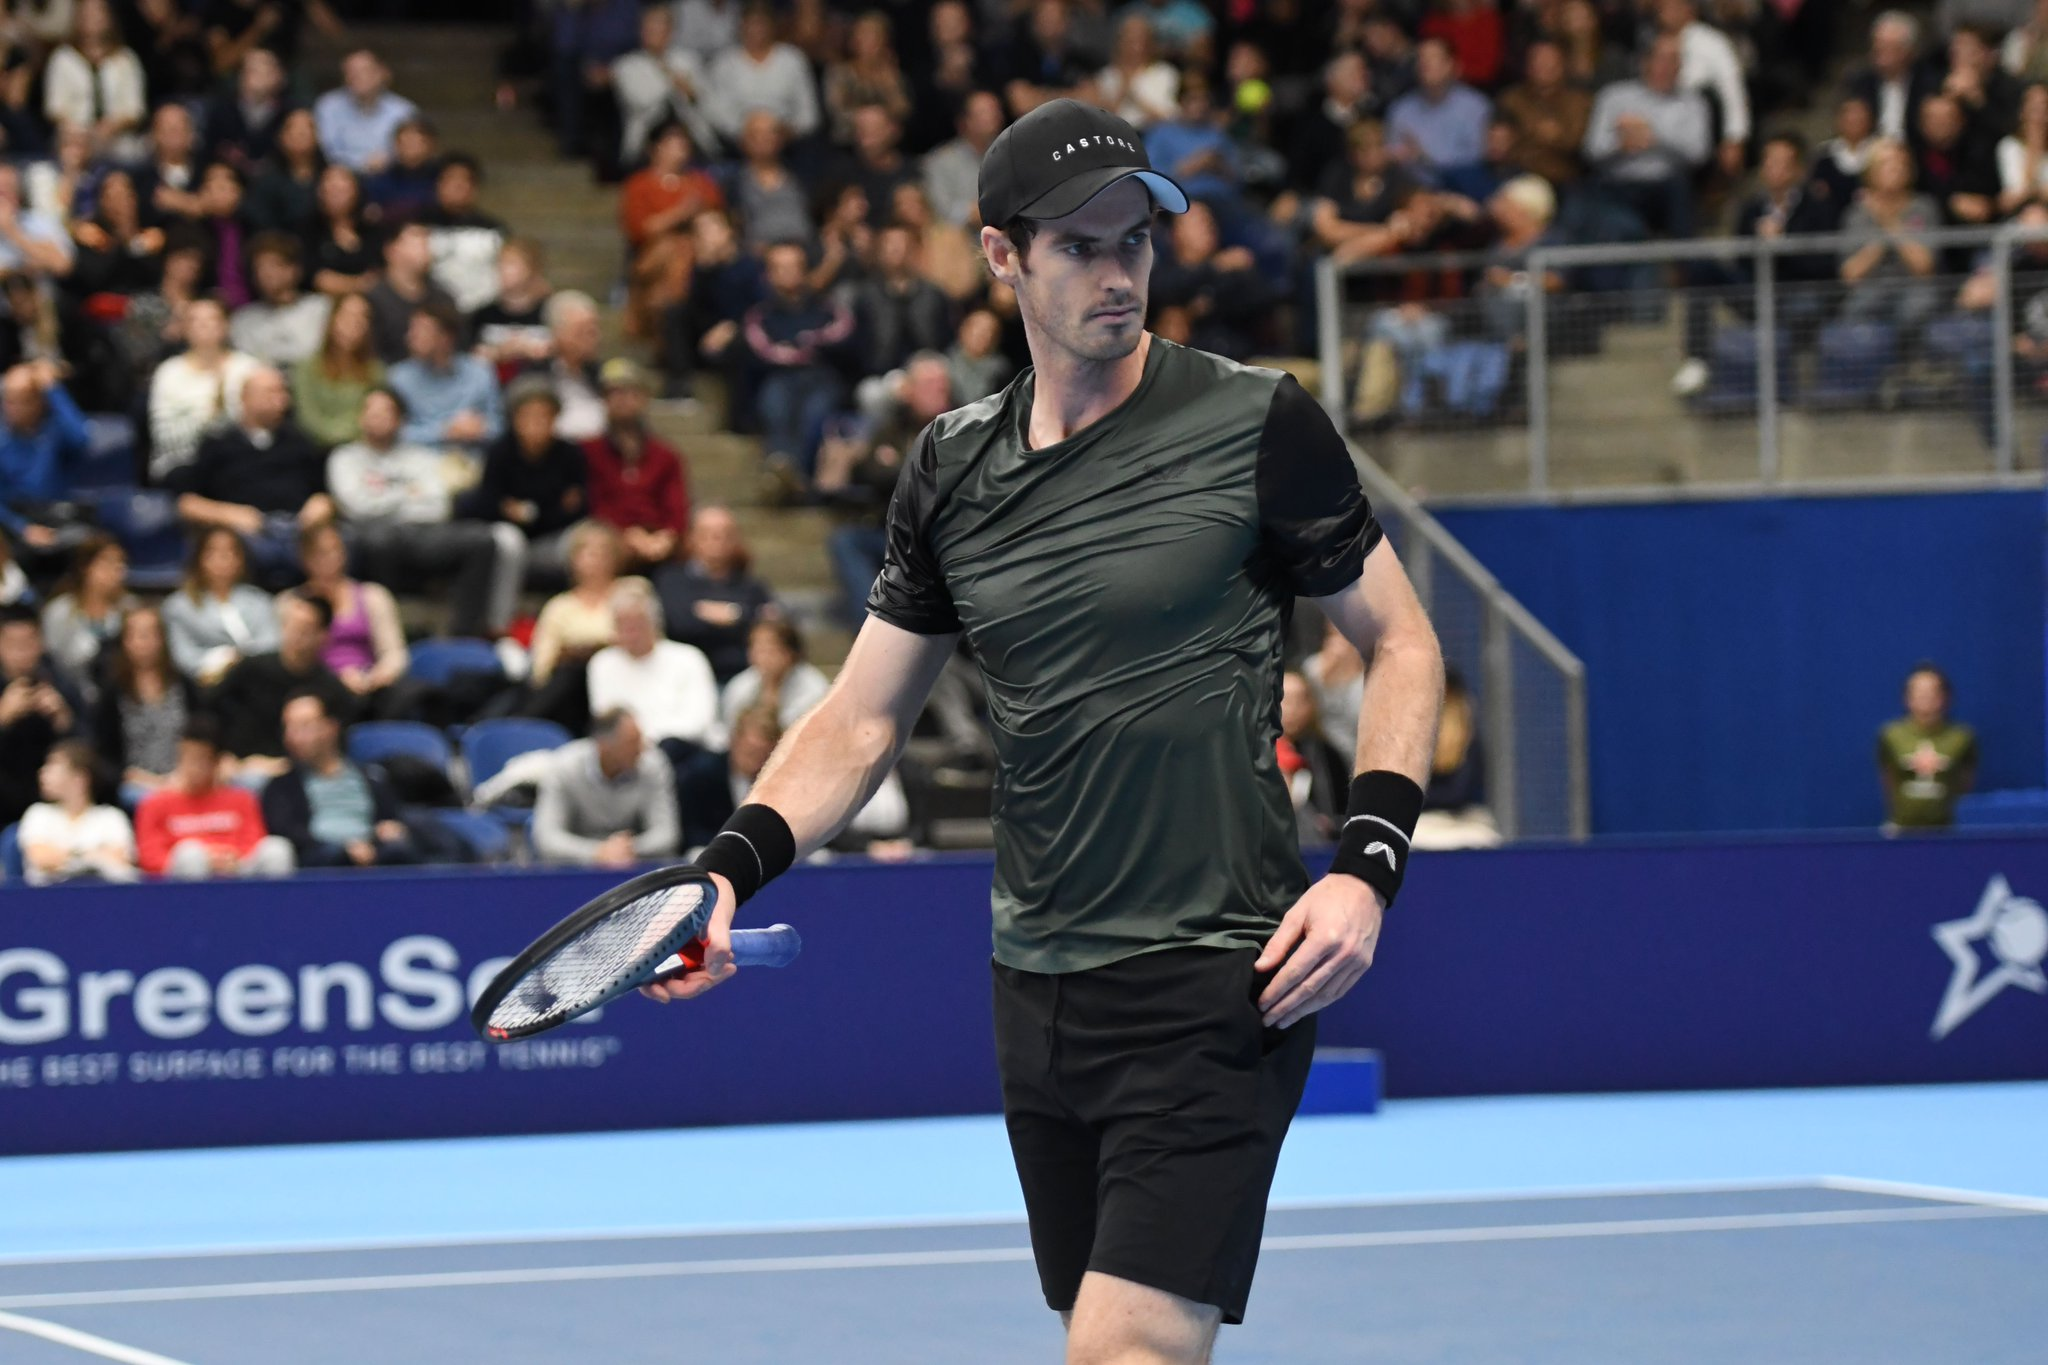 Andy murray sobe 116 posições no ranking